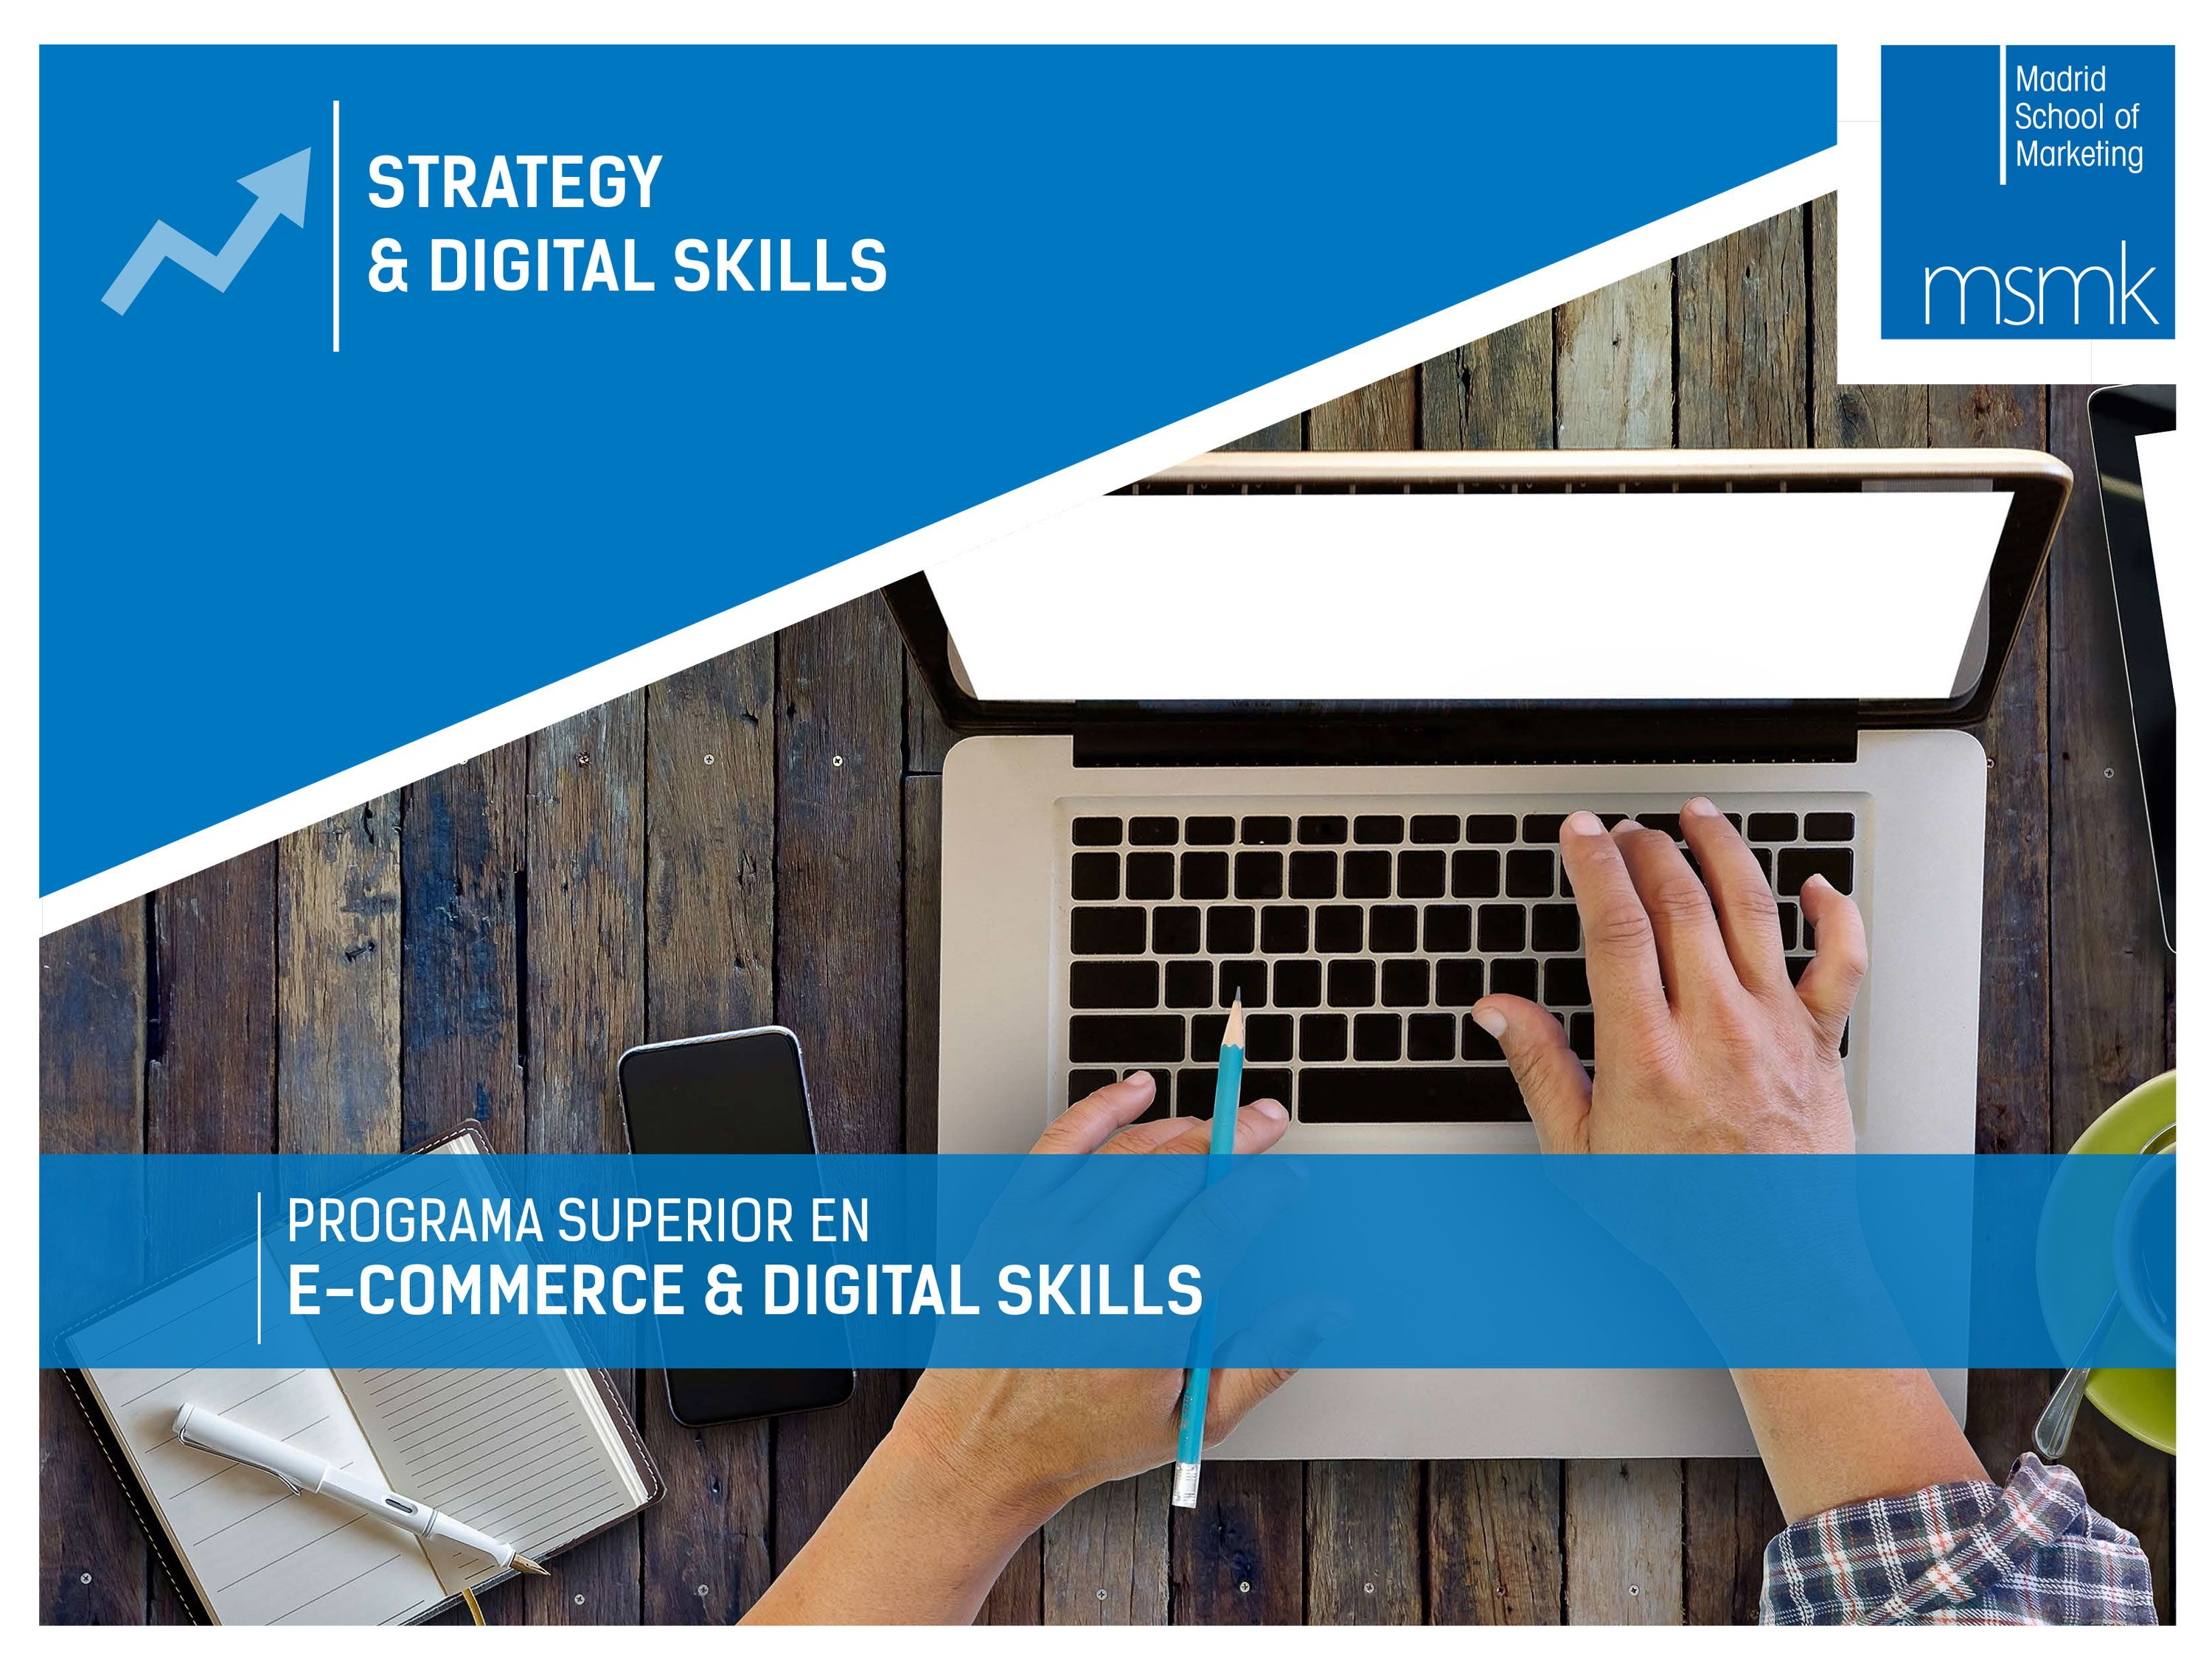 Madrid School of Marketing lanza un nuevo Programa Superior en e-Commerce & Digital Skills